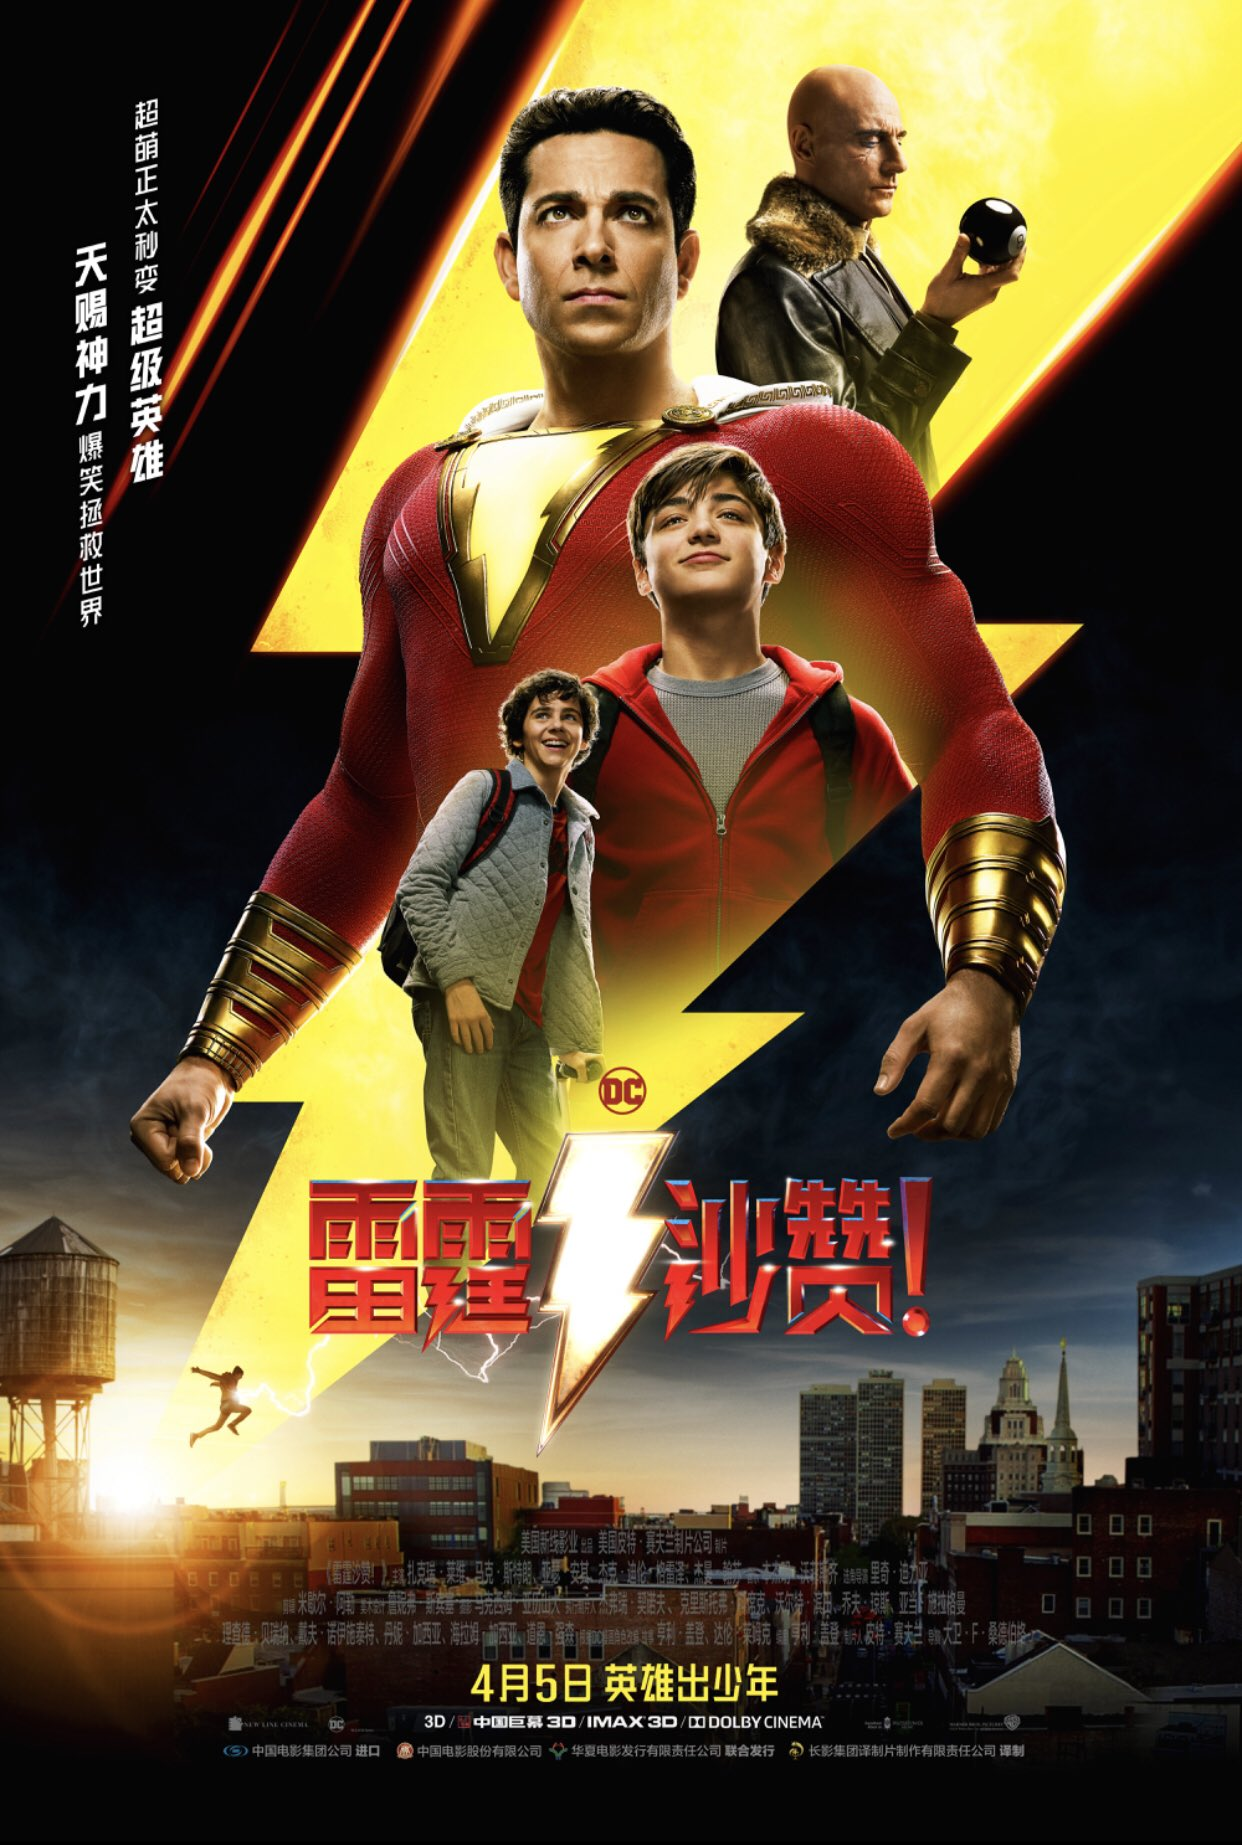 Shazam Gets An Awesome New Chinese Poster Ahead Of Its Release Next